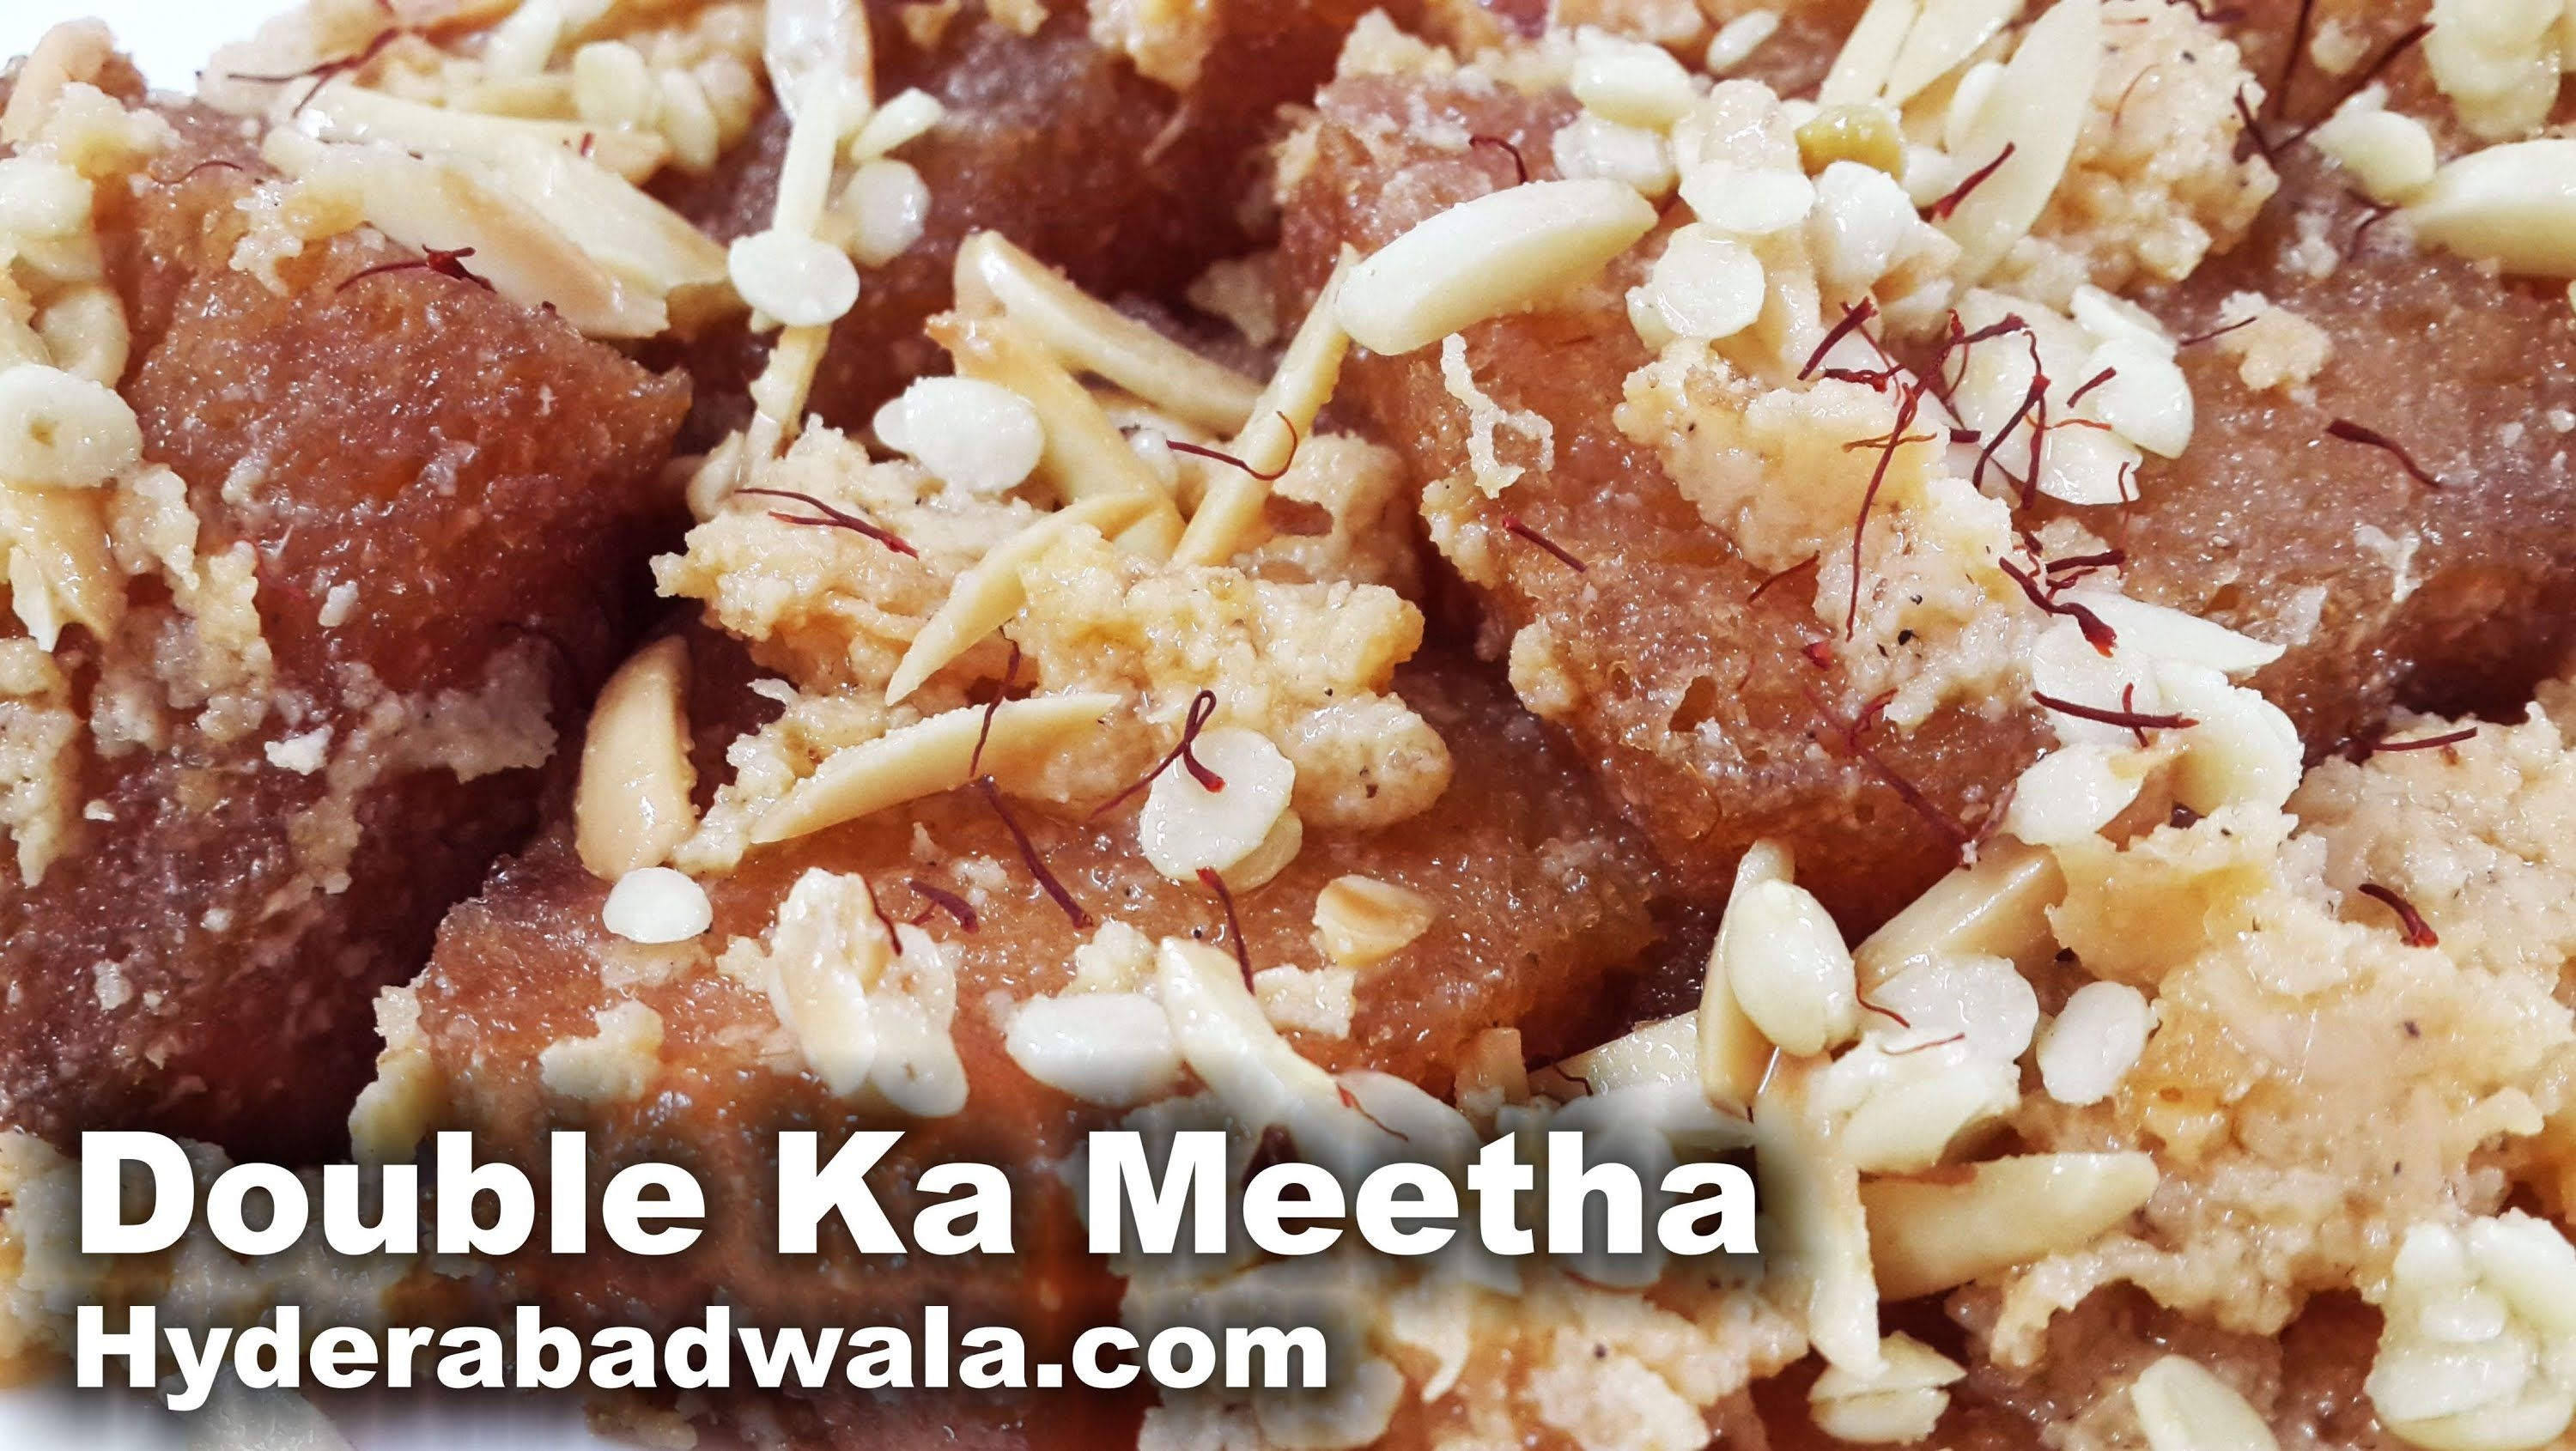 Double ka meetha recipe video how to make hyderabadi double ka double ka meetha recipe video how to make hyderabadi double ka meetha indian sweetscooking forumfinder Images